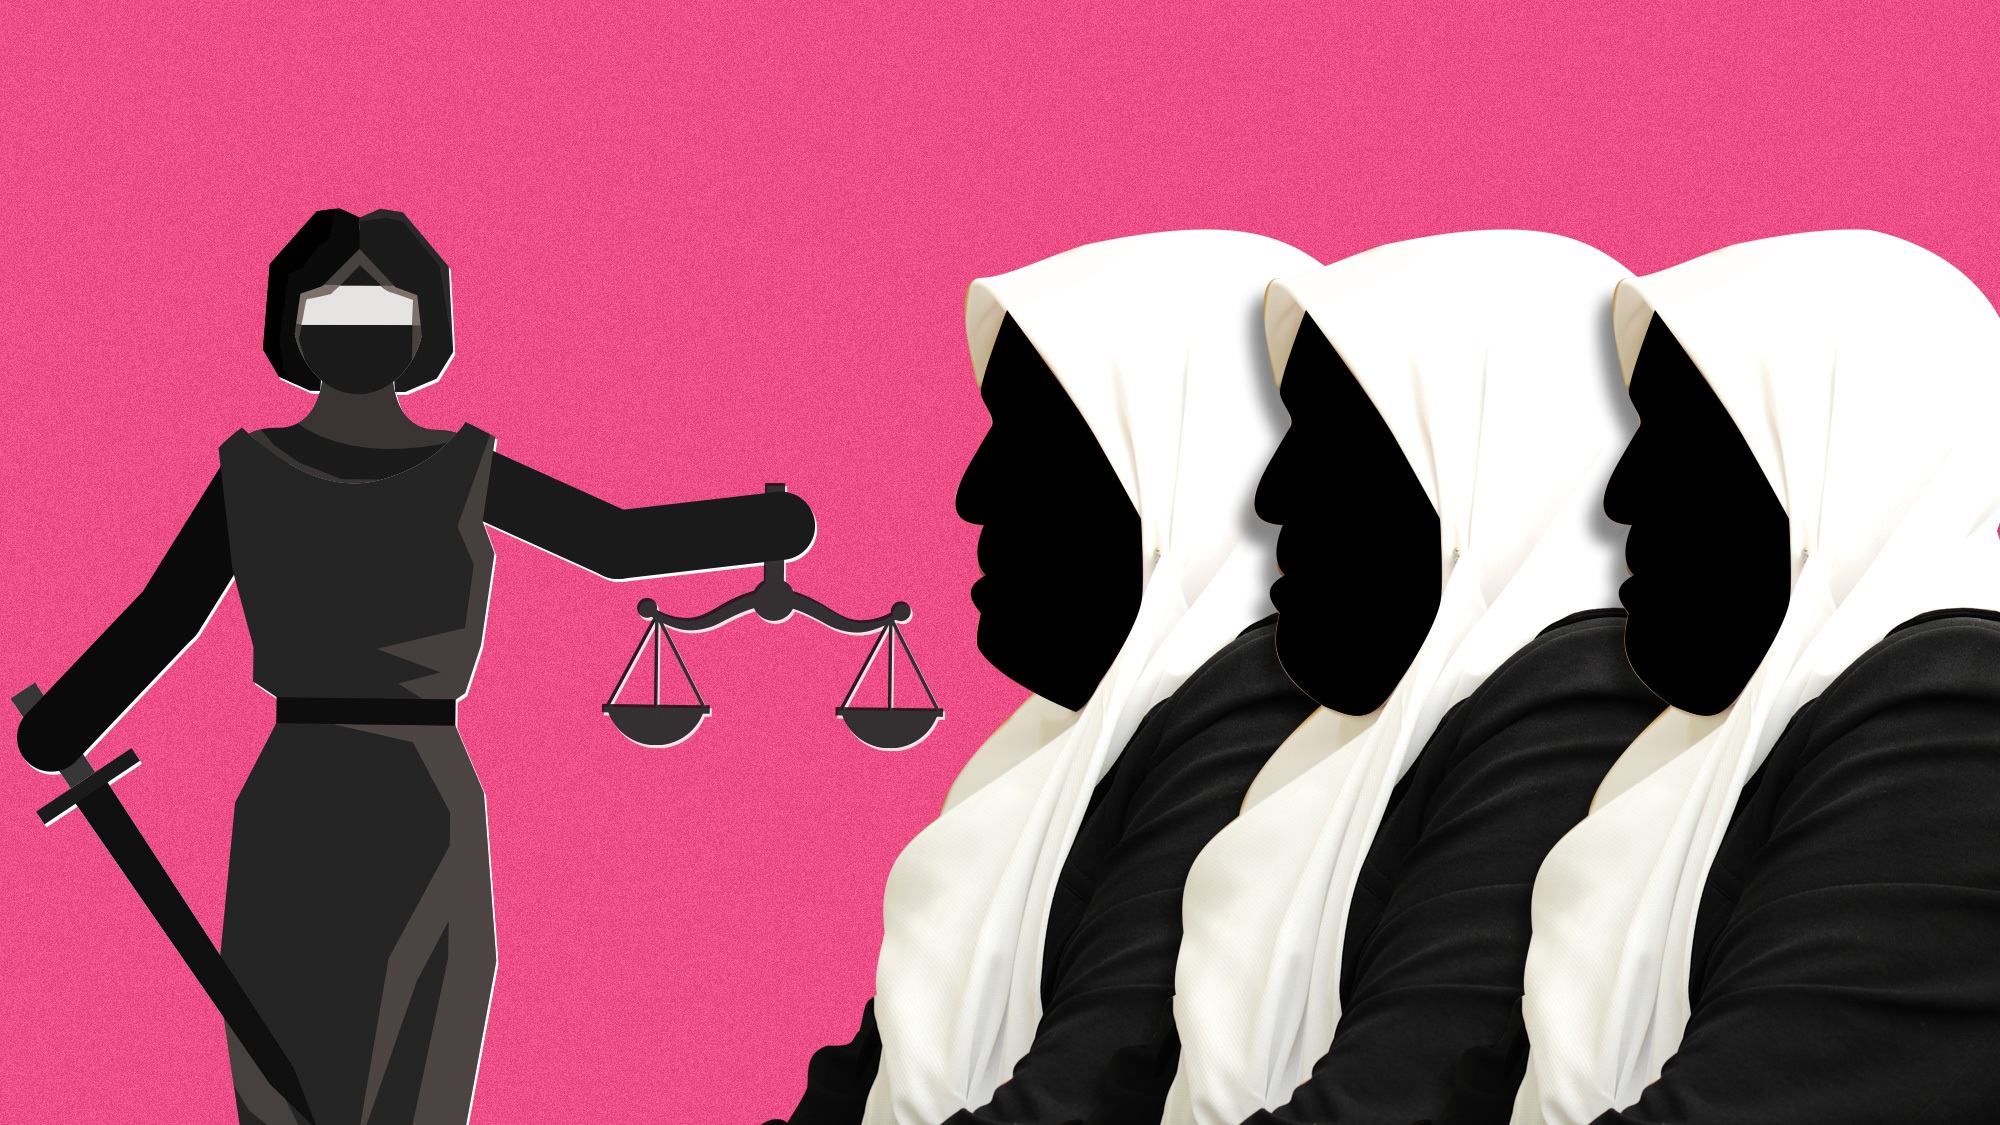 muslim women, Ram Rahim, supreme court, practice of talaq, polygamy, judgemet on triple talak